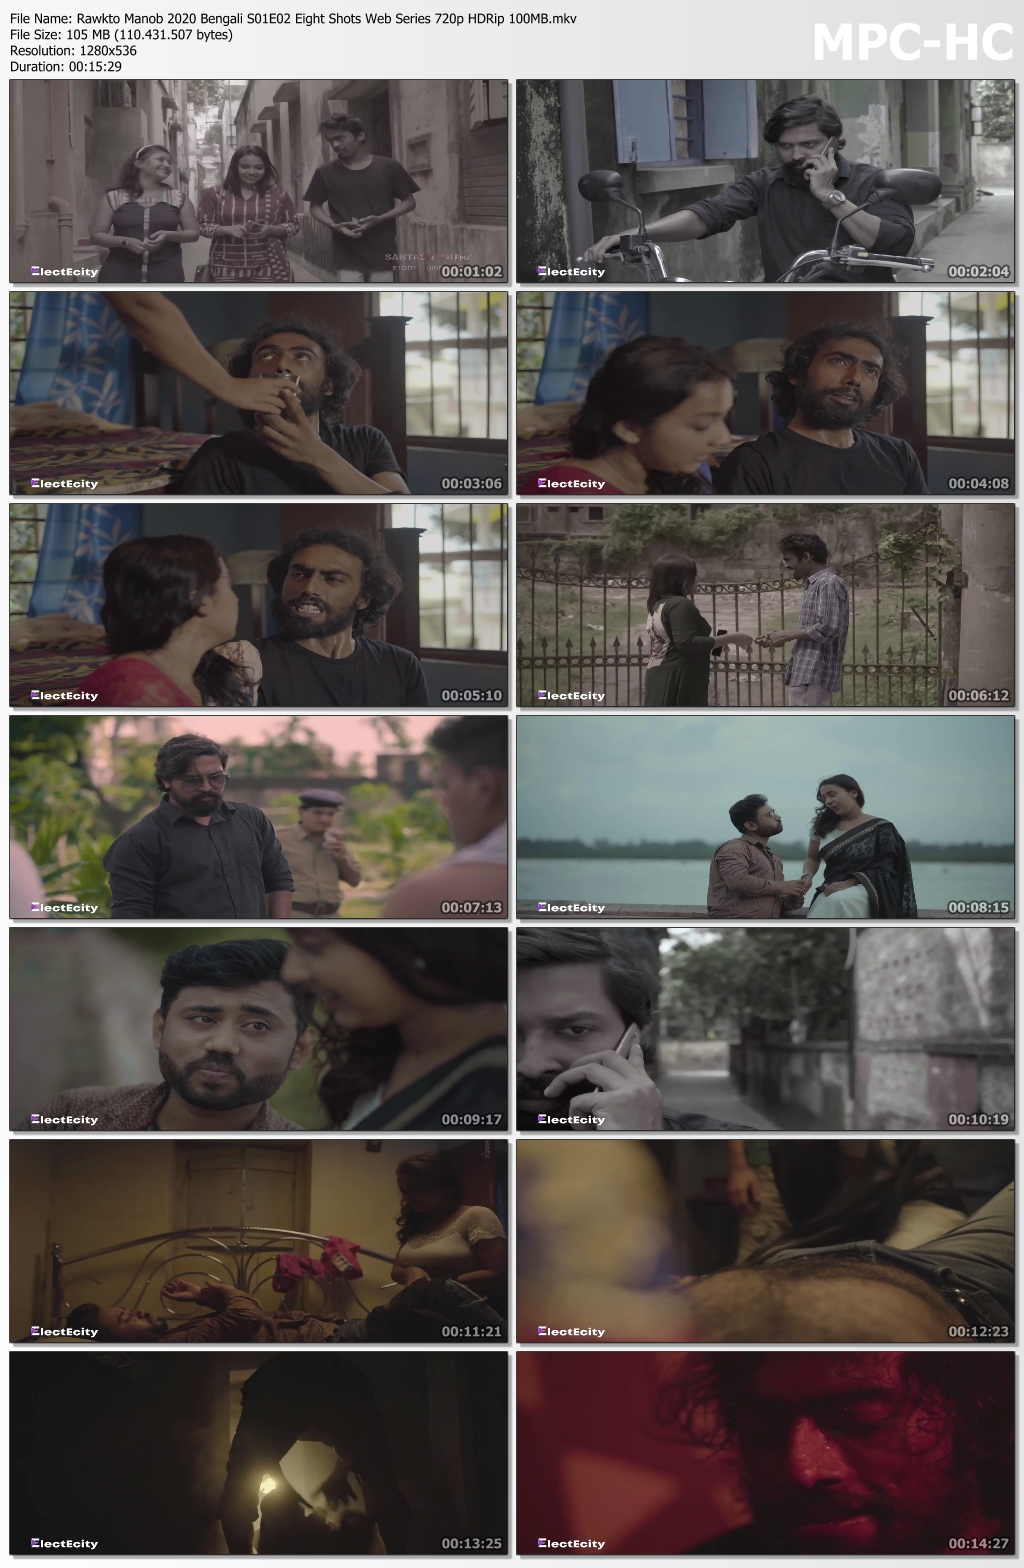 Rawkto-Manob-2020-Bengali-S01-E02-Eight-Shots-Web-Series-720p-HDRip-100-MB-mkv-thumbs